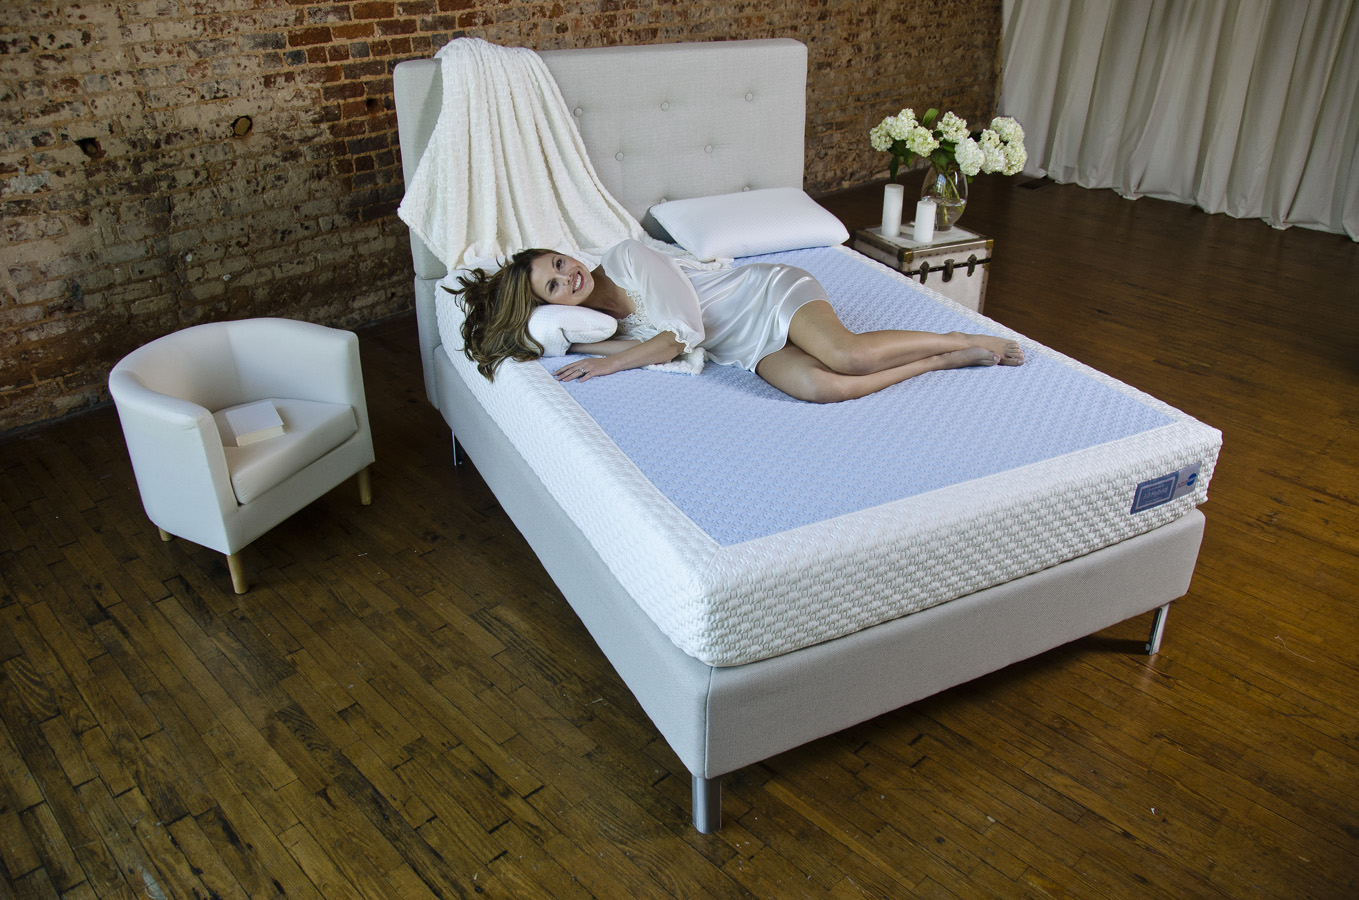 Image Result For Stearns And Foster Latex Mattress Complaints